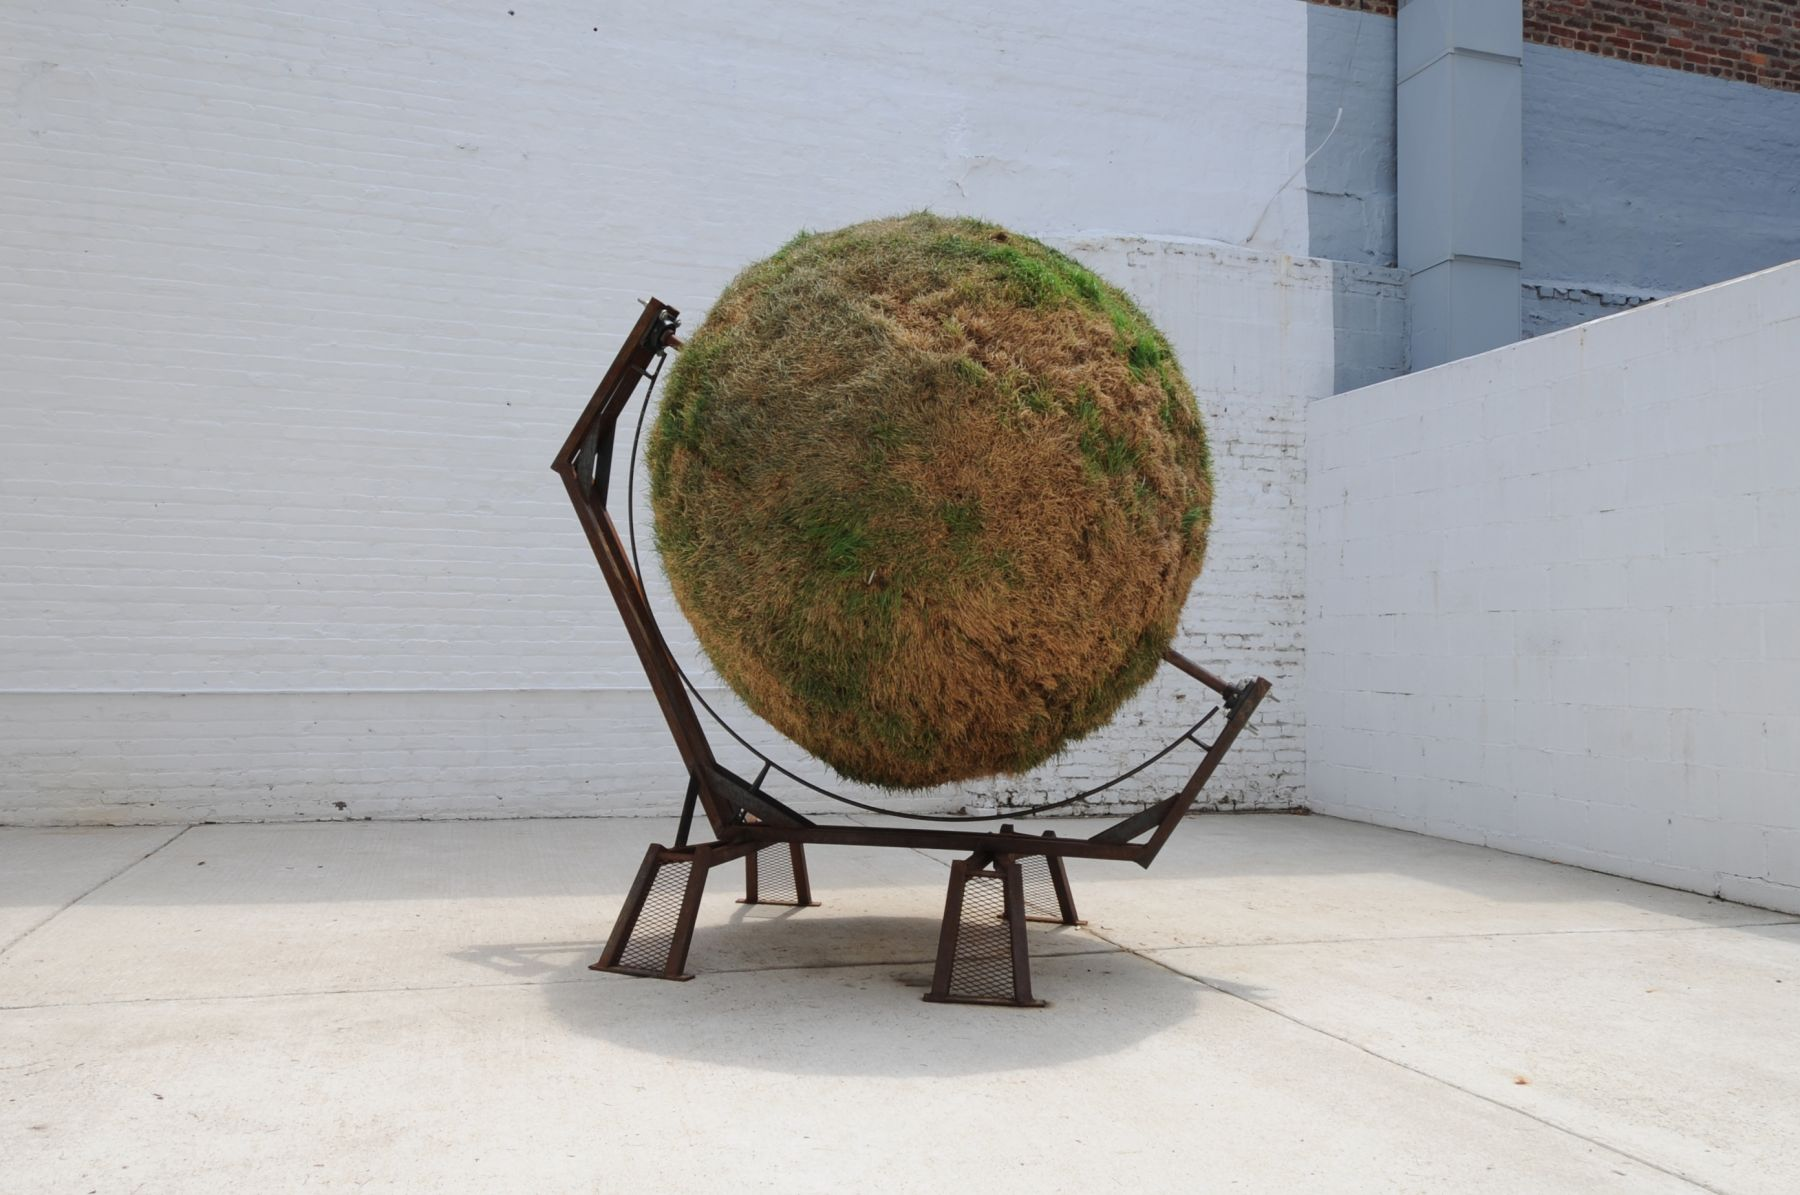 DAN GIOIA Sphere 2011, sod and steel, 84 x 84 x 60 inches. Installation view: ACADEMY 2011, Conner Contemporary Art.